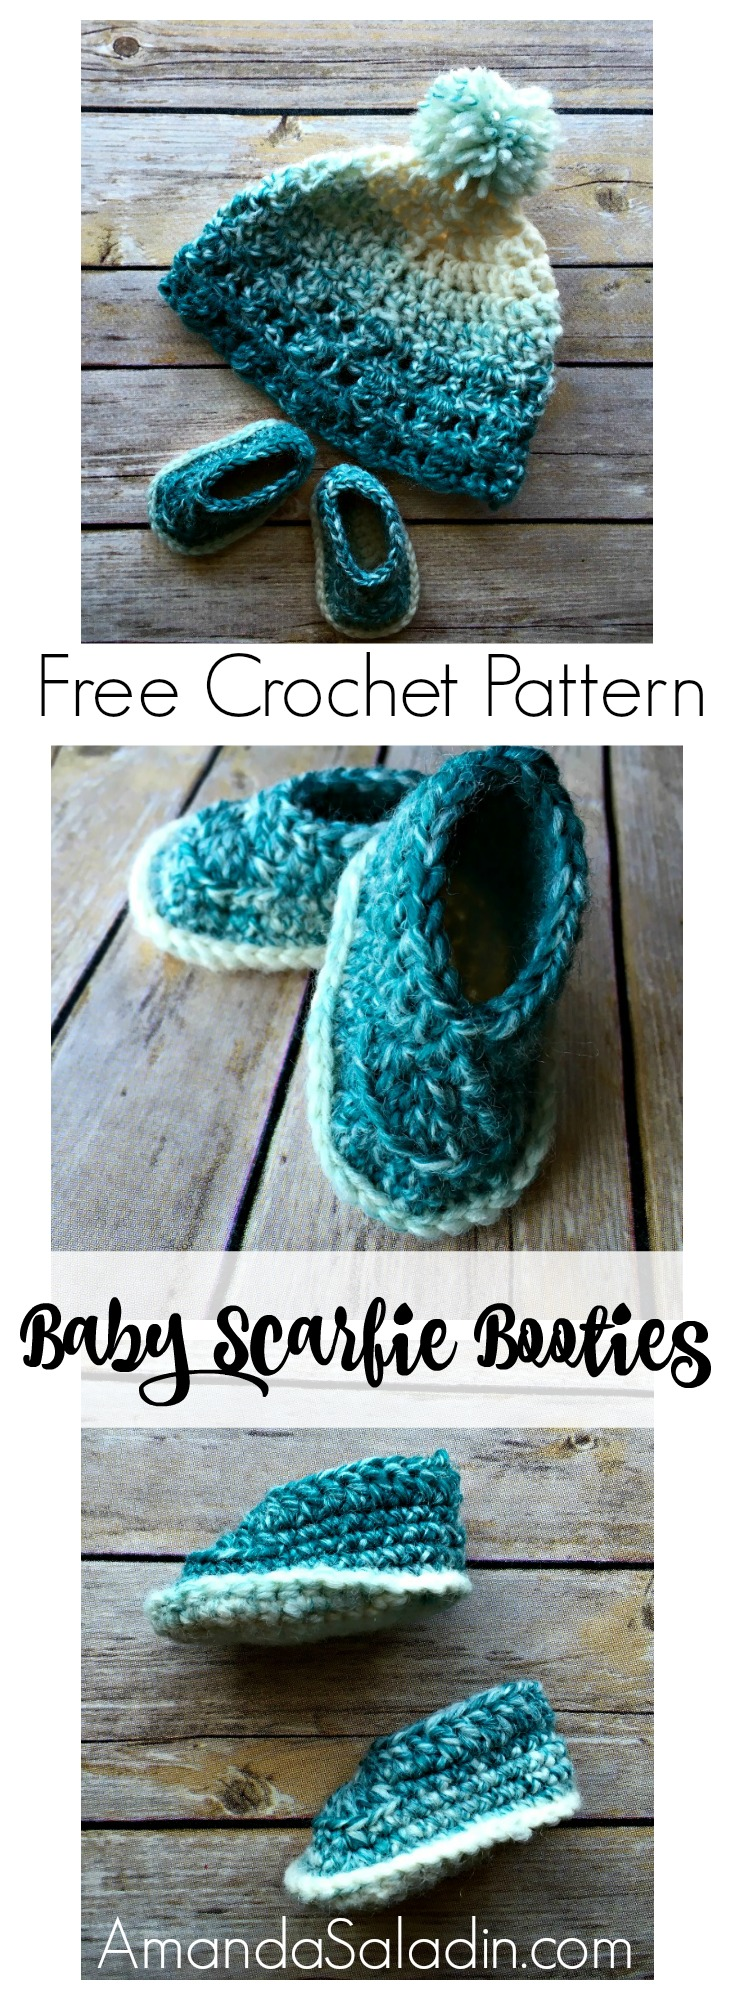 Free Crochet Pattern. Super simple baby boots!